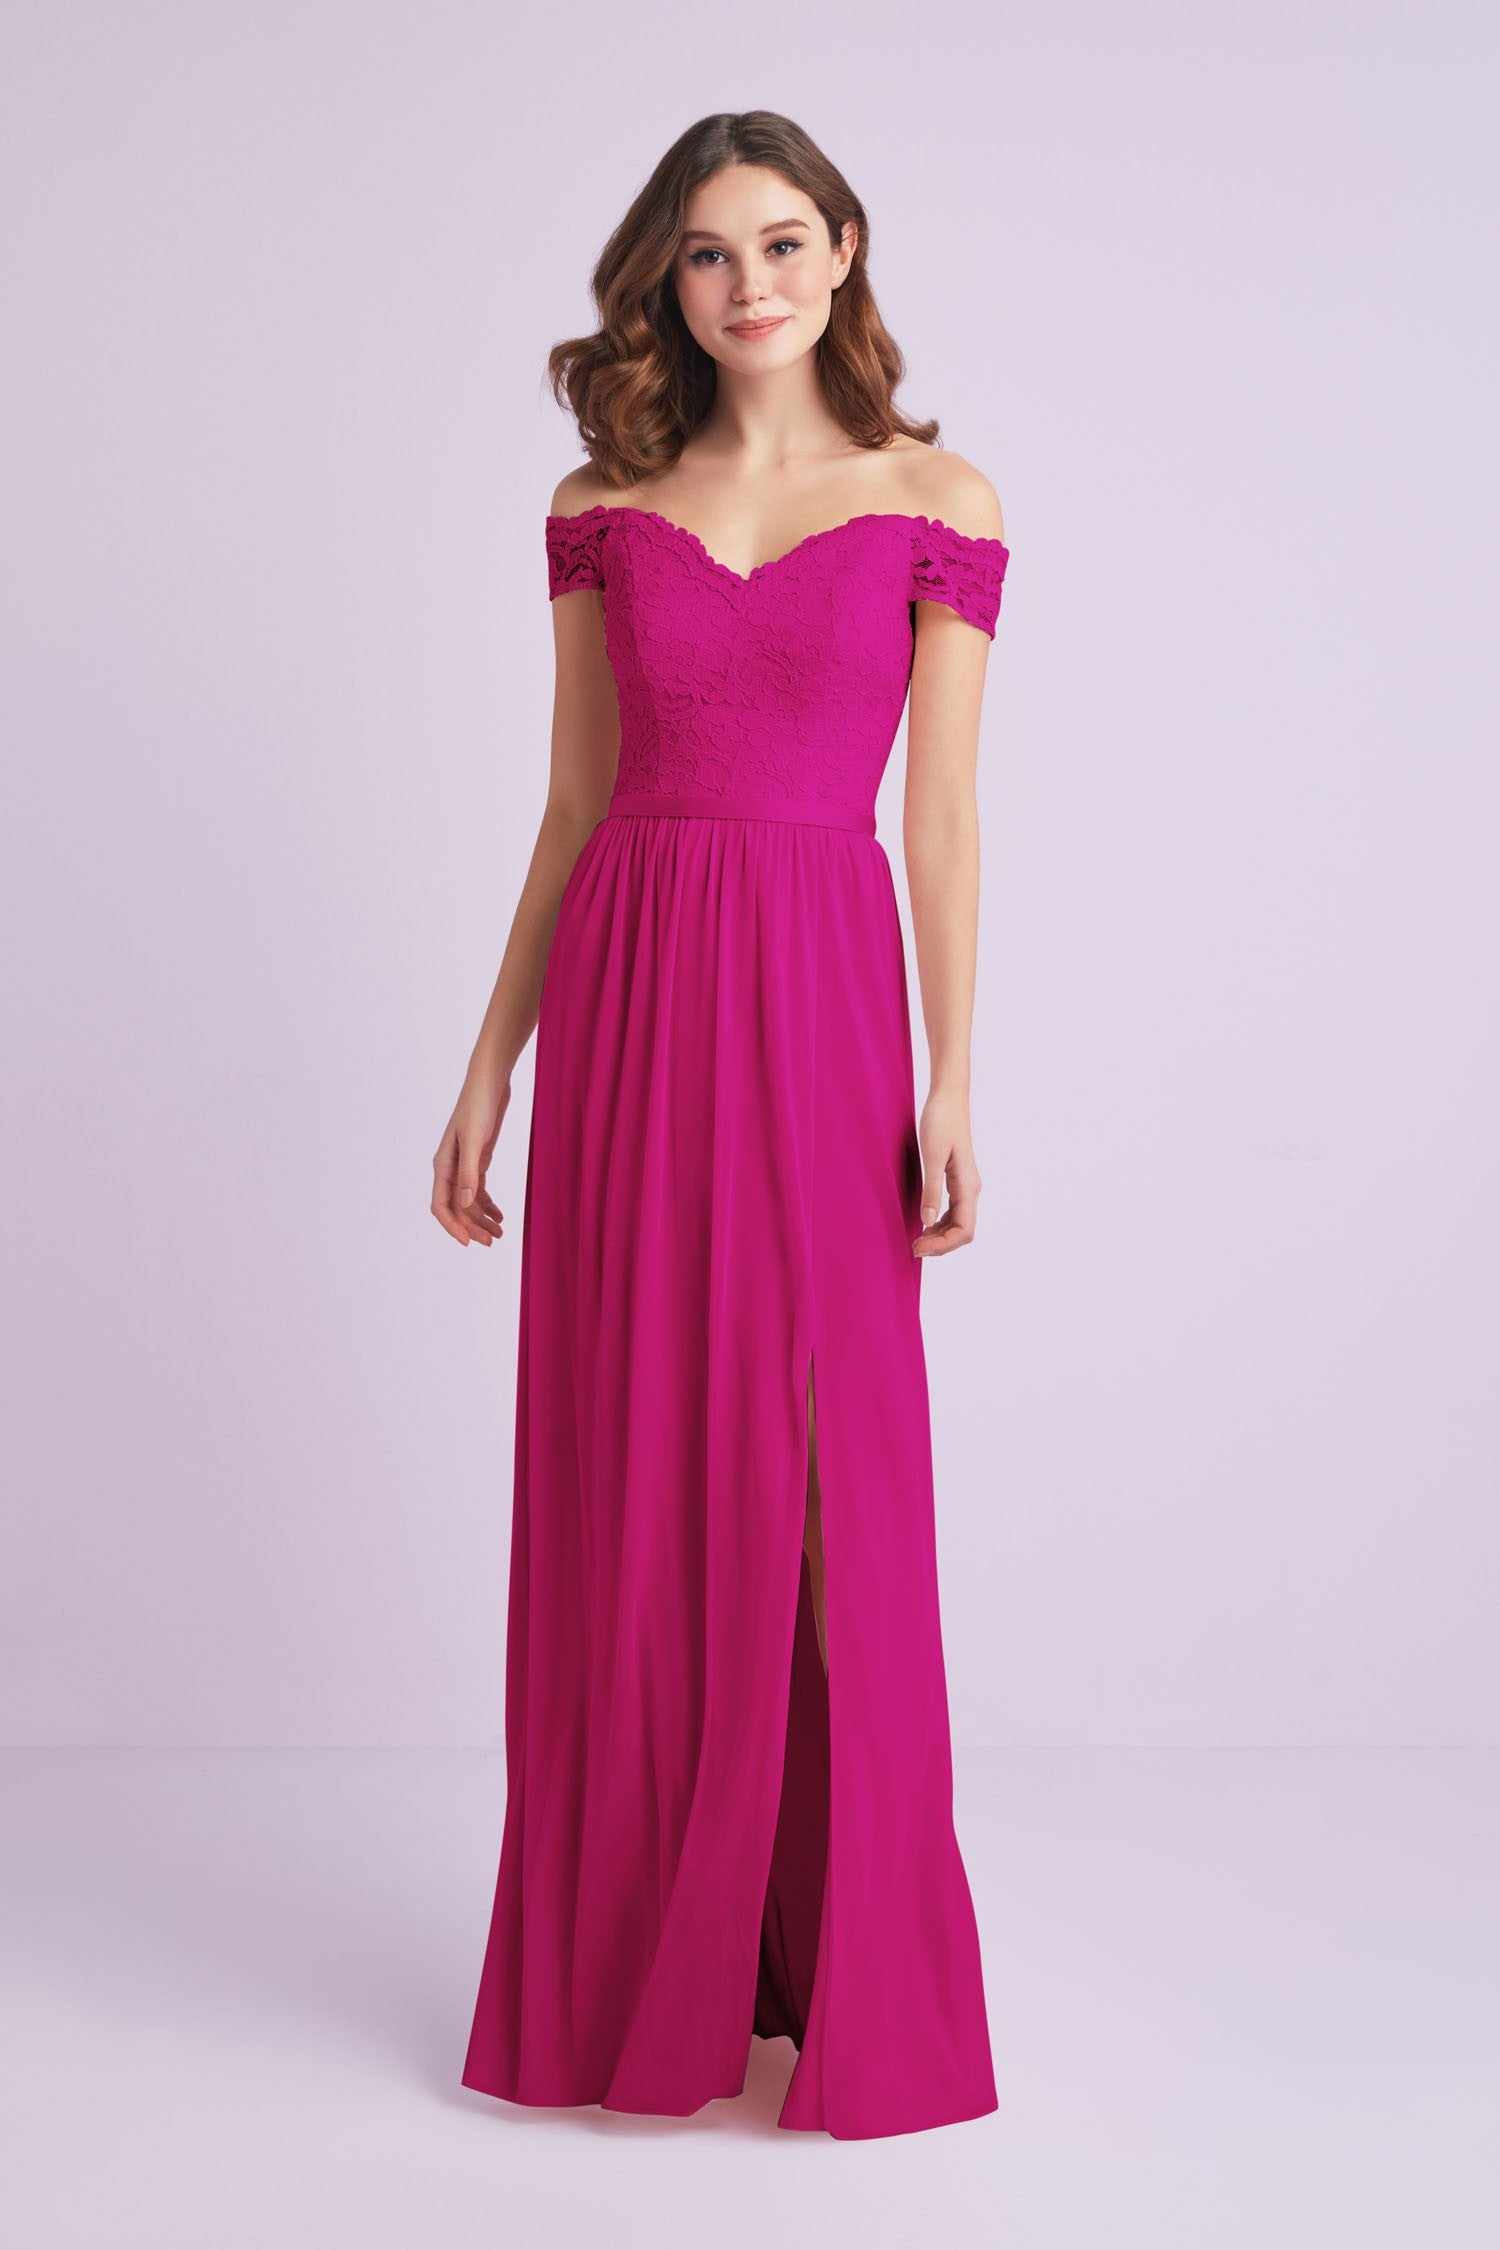 36b672a31cfb Off-the-Shoulder Lace and Mesh Bridesmaid Dress-F19950